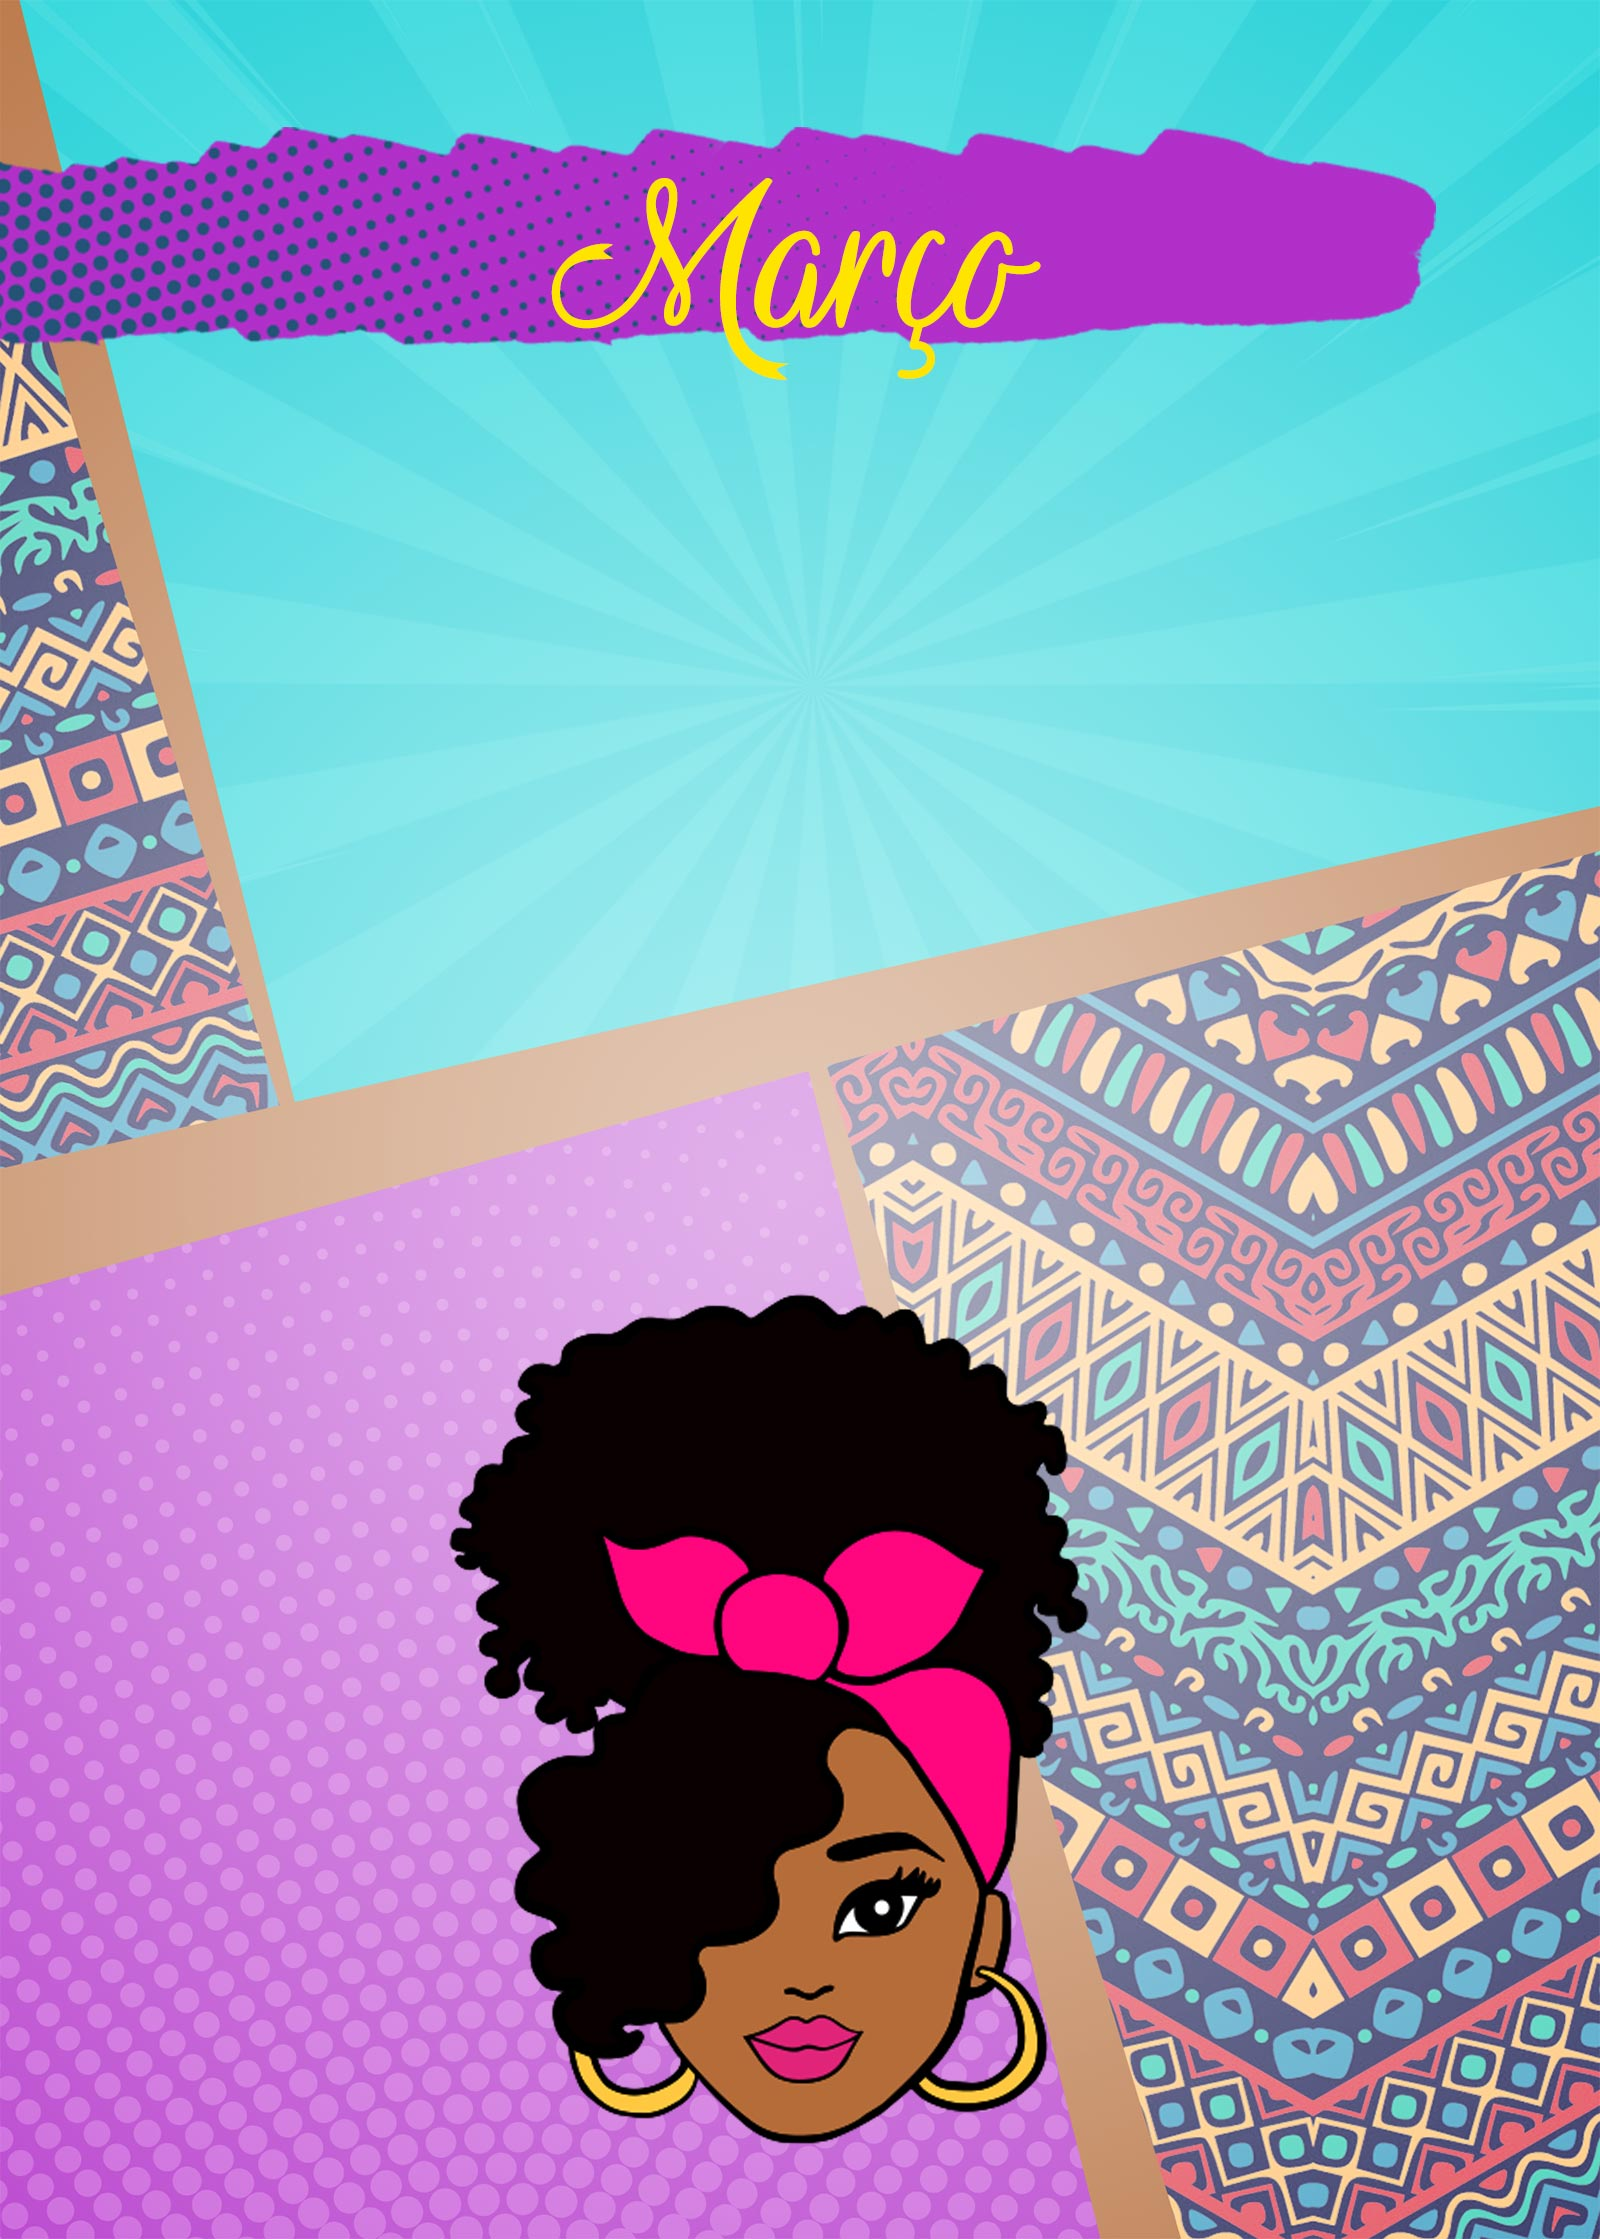 Planner Mulher Afro Capa Marco